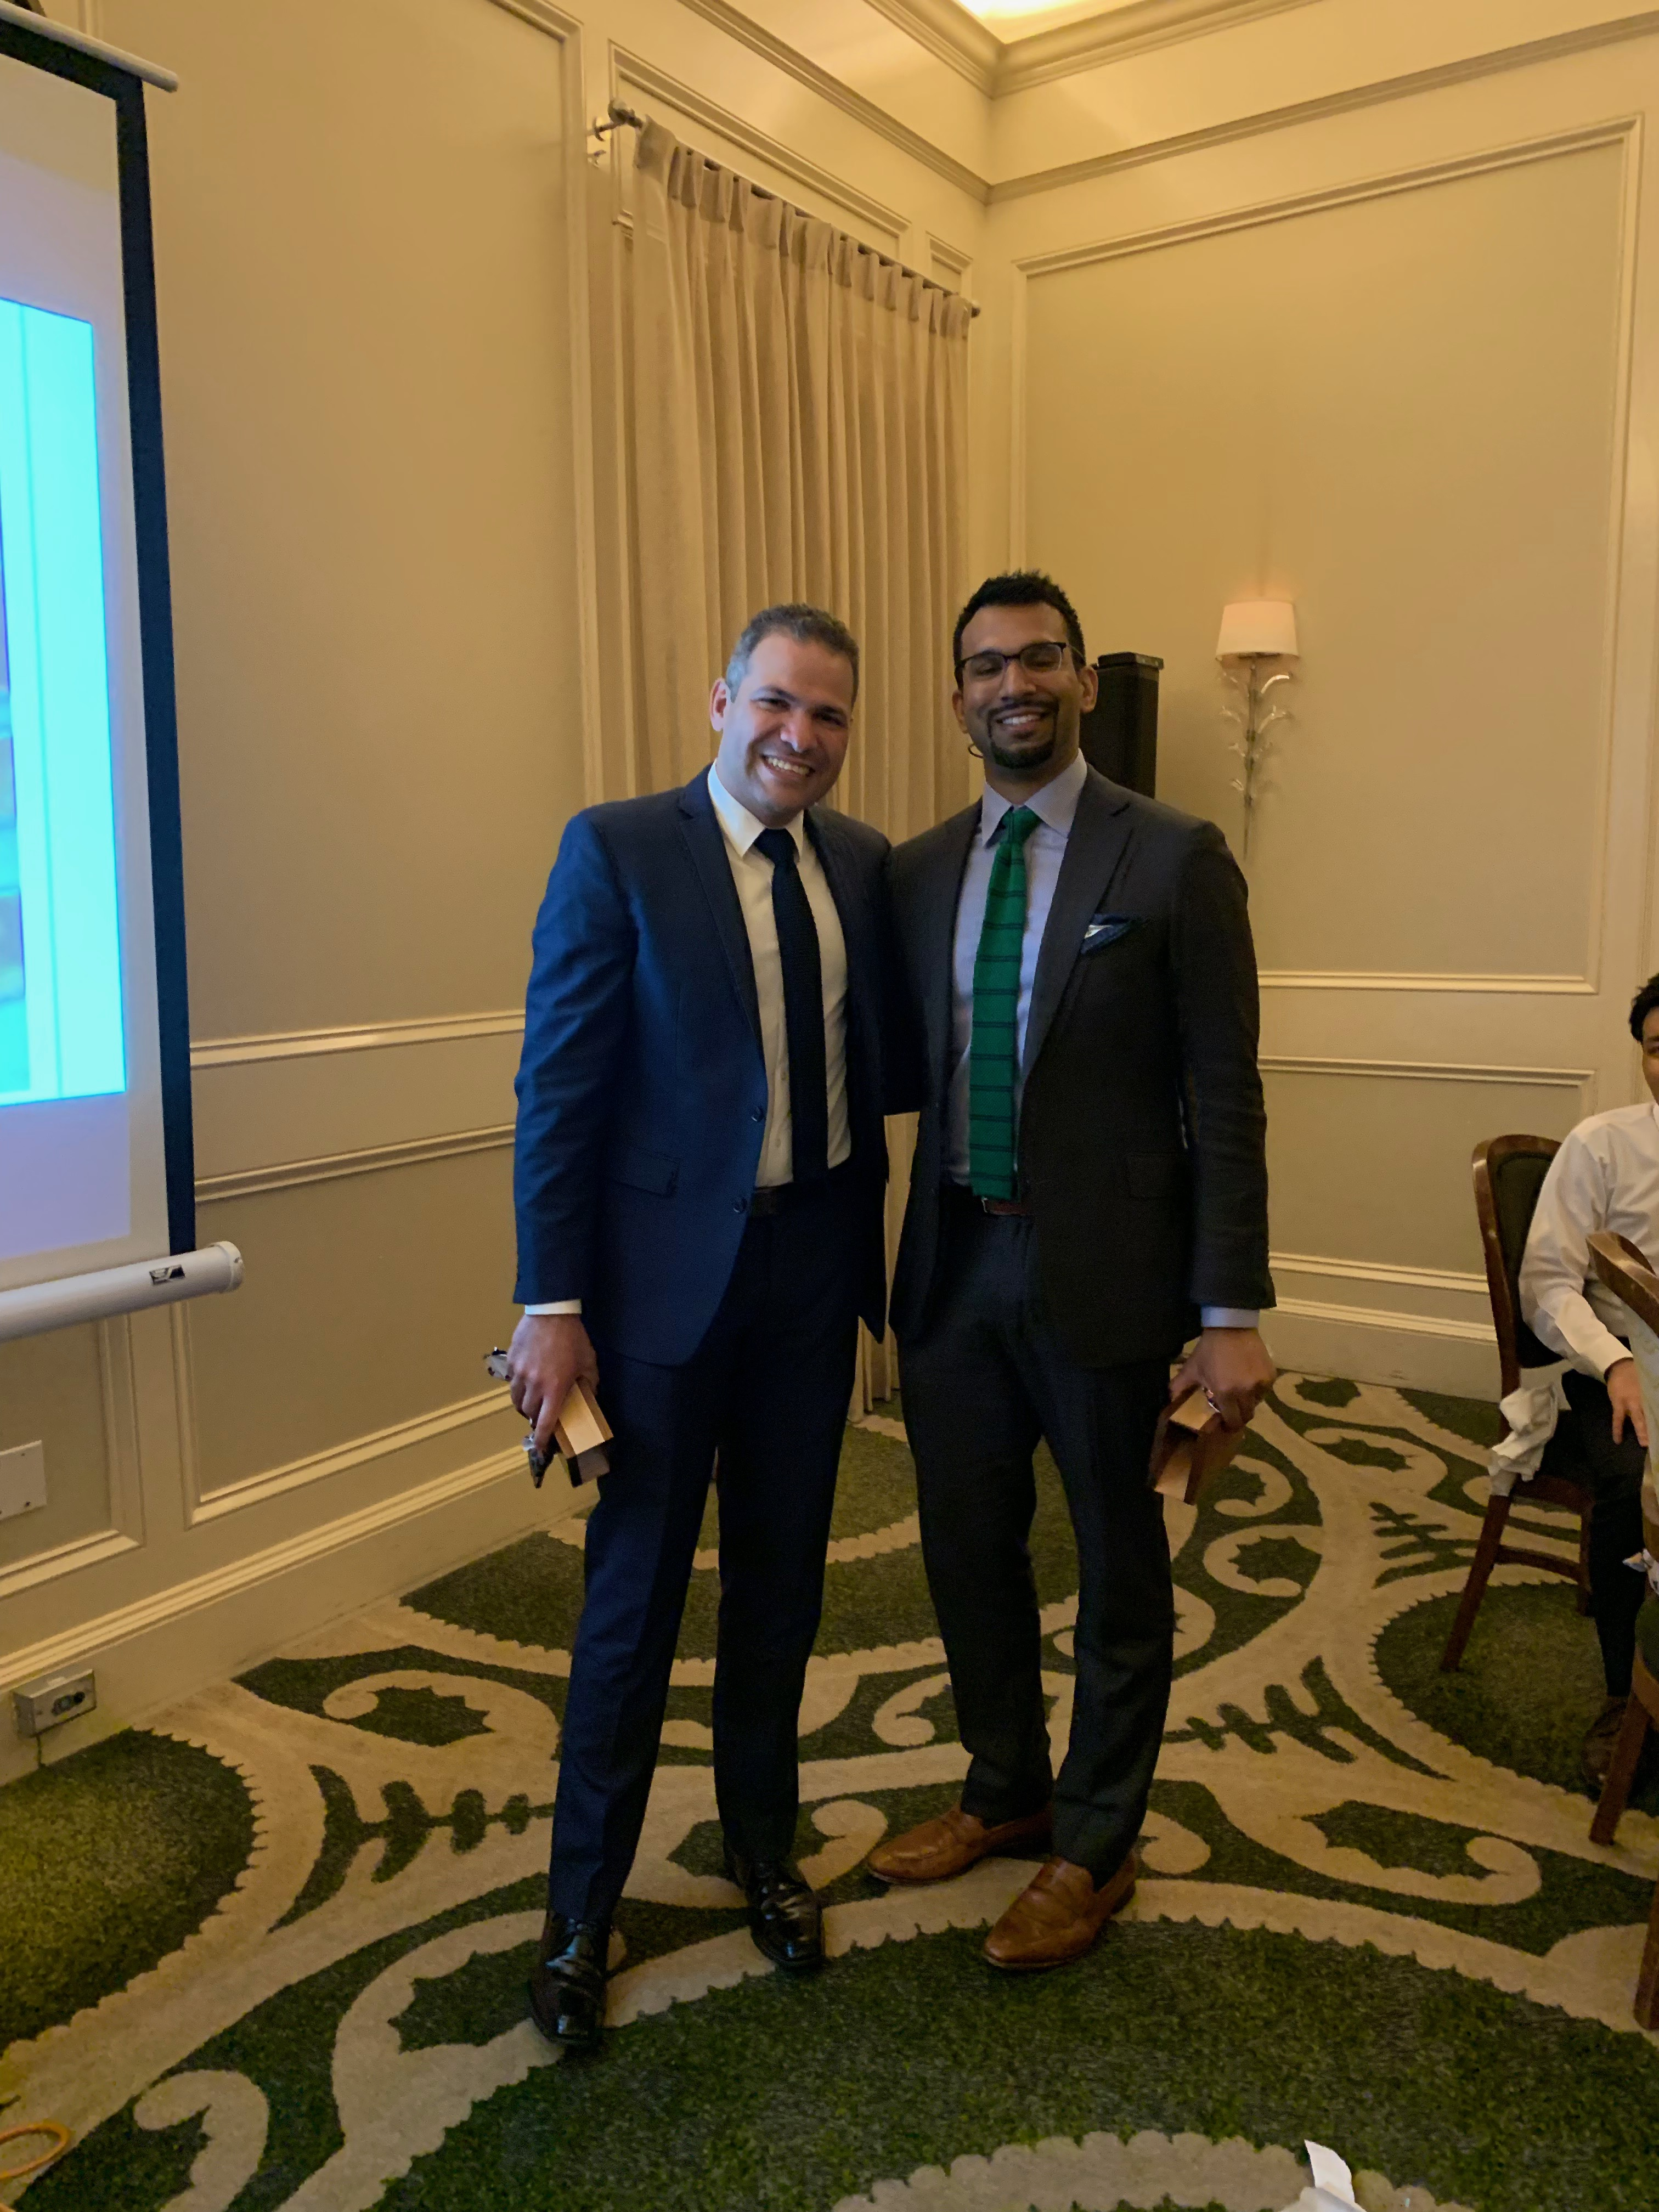 image from 2019 Thoracic Surgery Fellowship Graduation Celebration